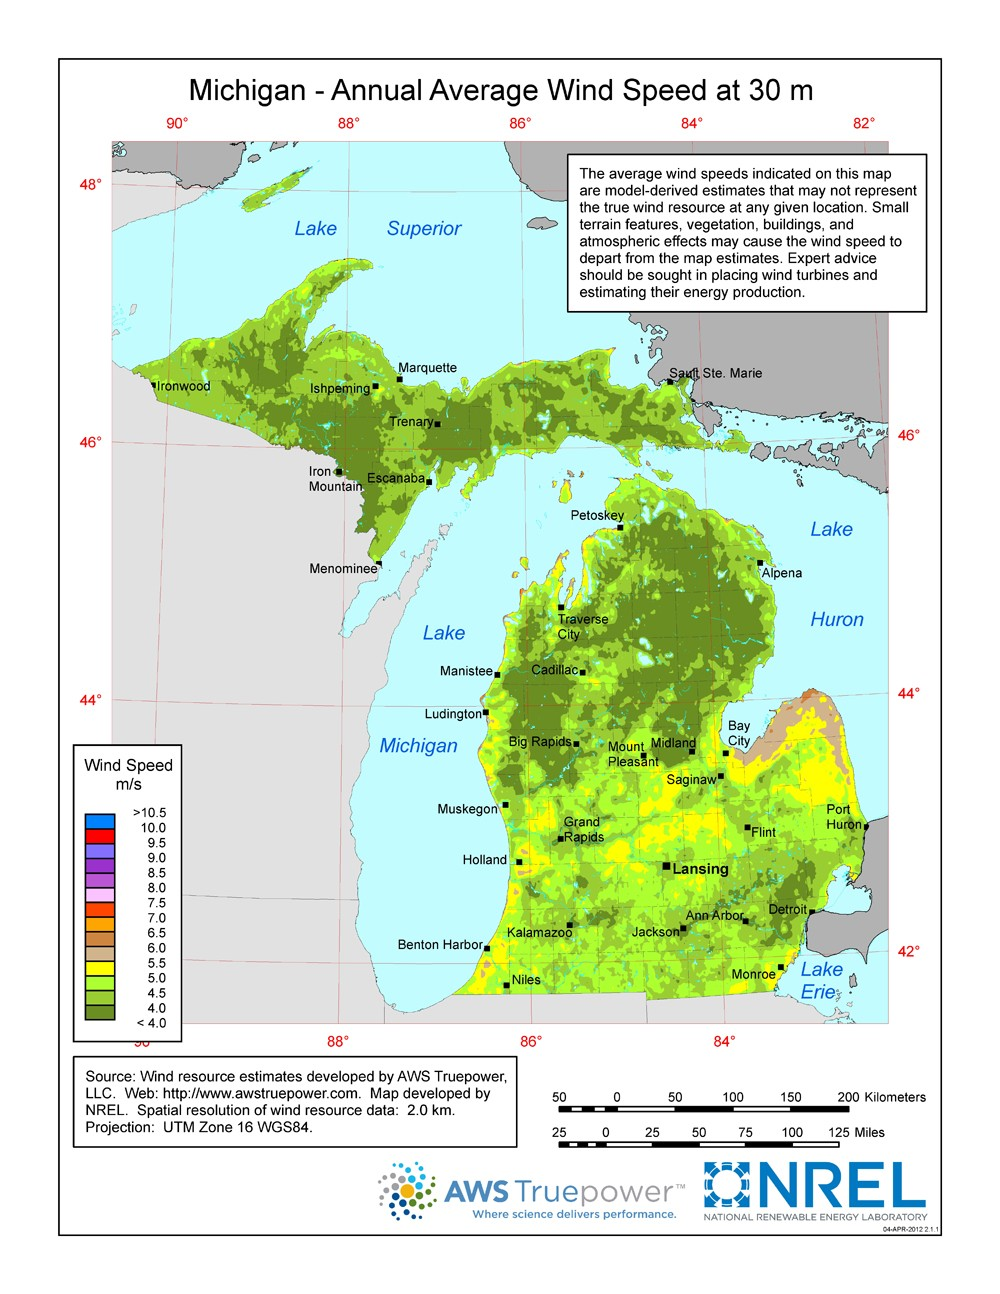 A map of Michigan showing wind speeds at a 30-m height.